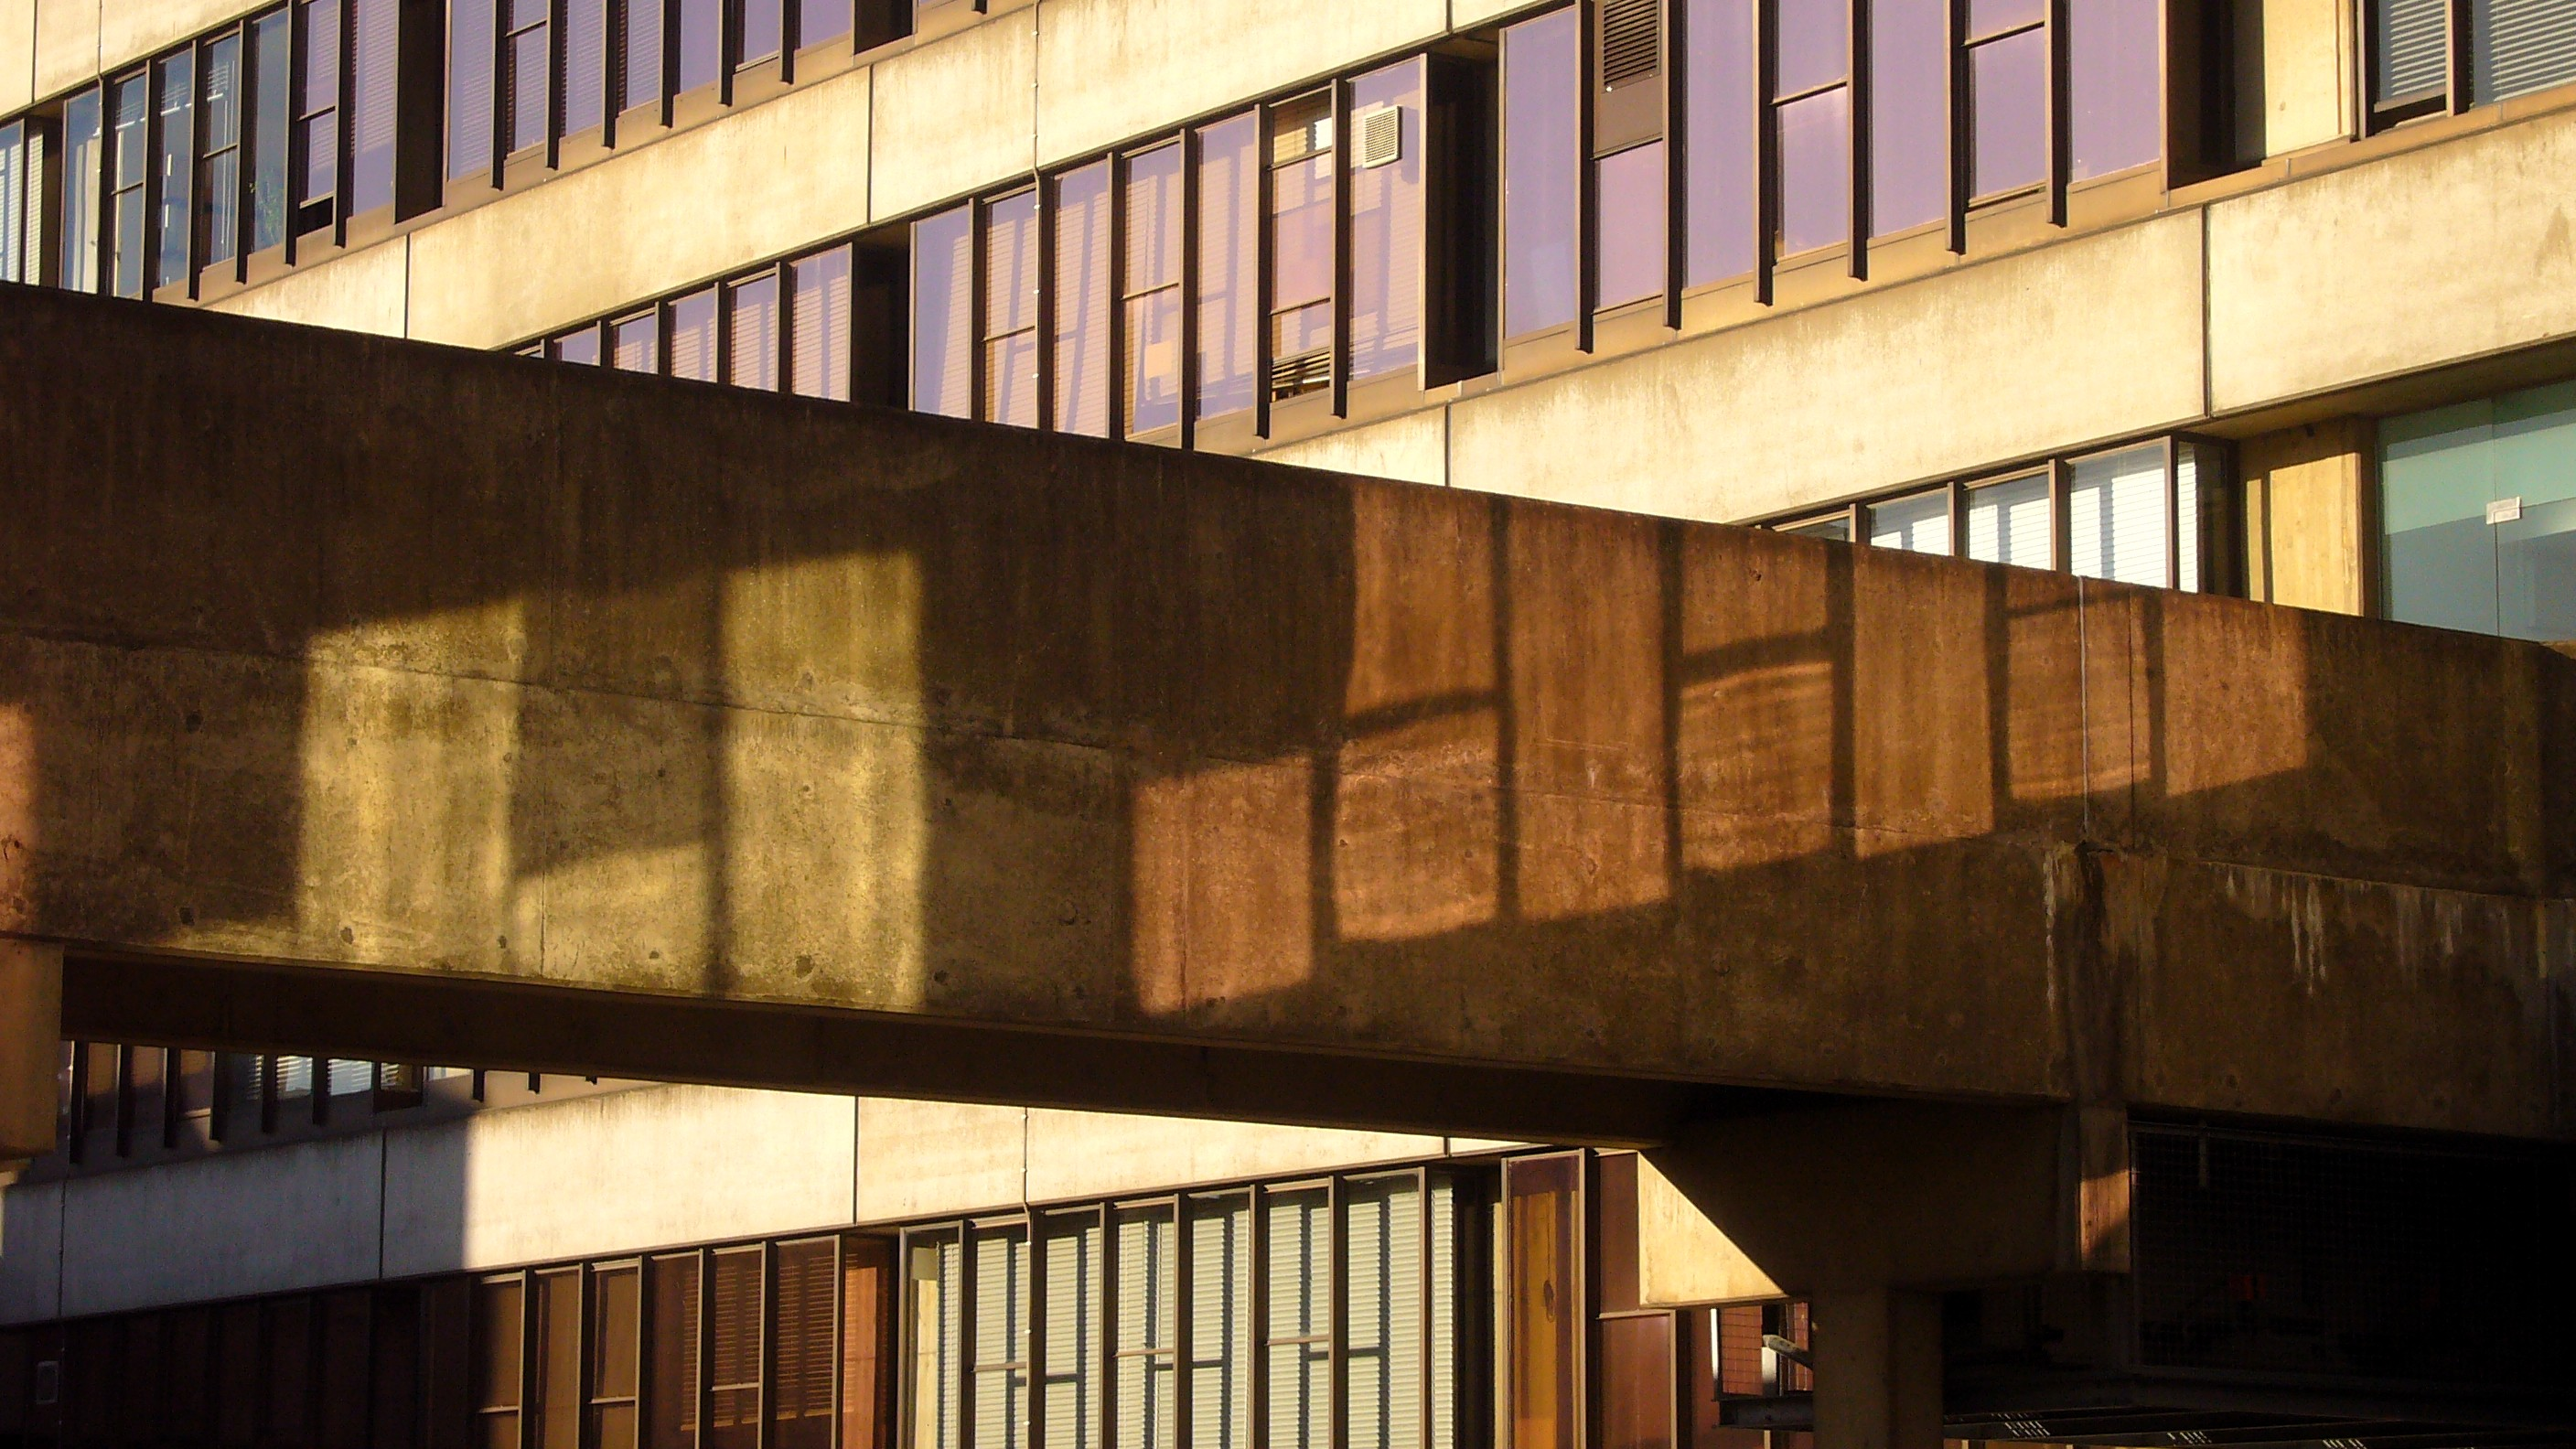 UEA, teaching wall 5. Photo: Flickr, Harry Harris.